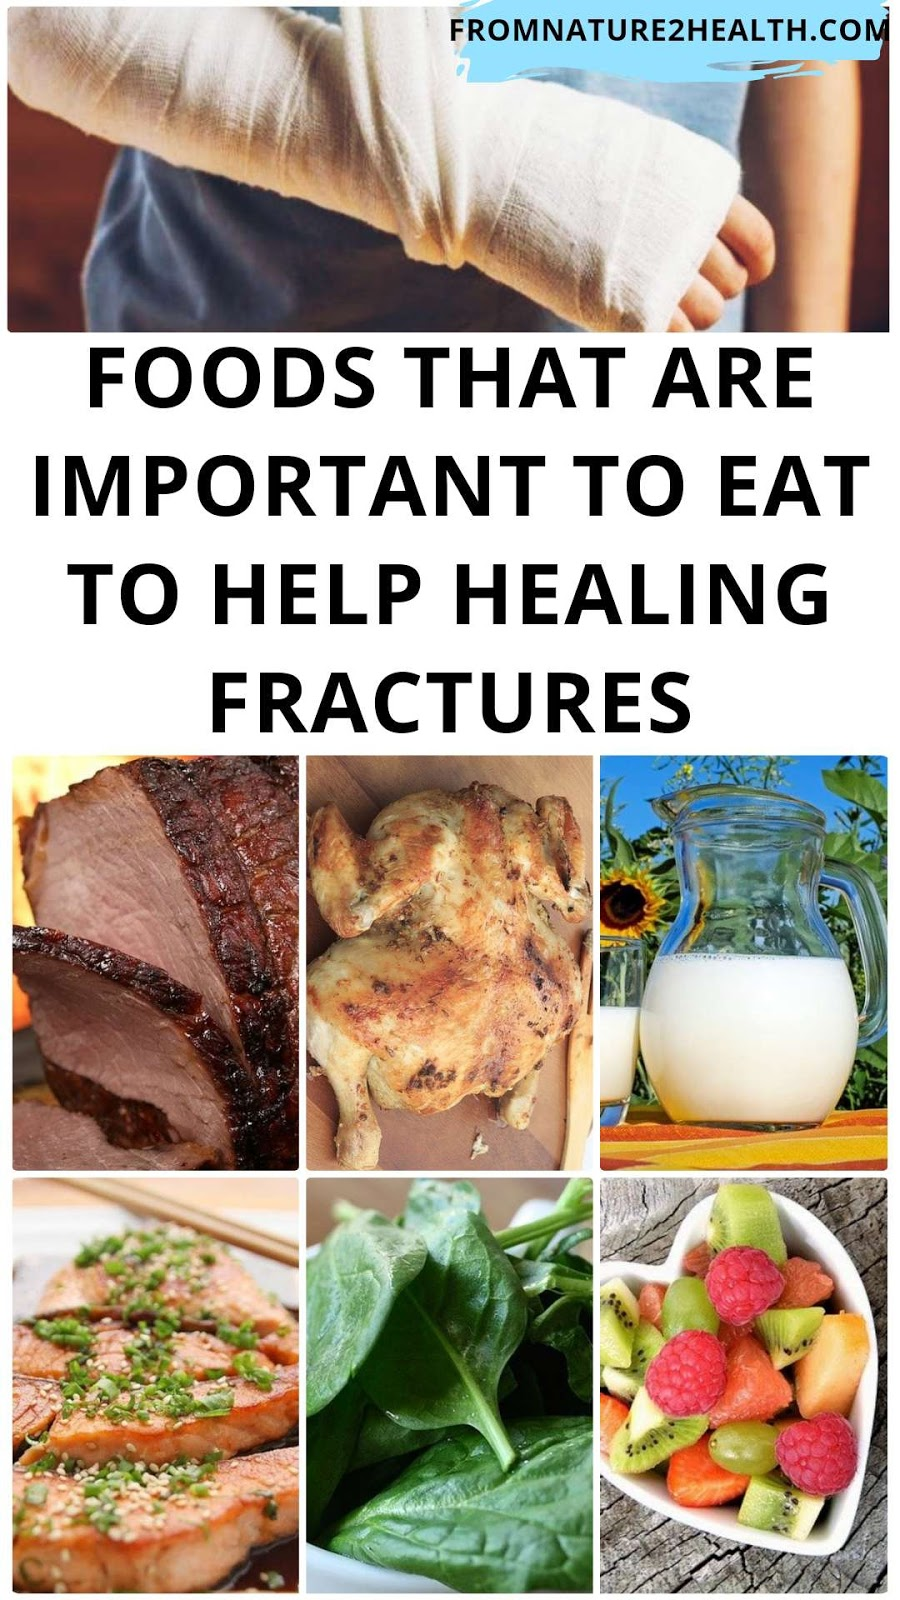 Foods That Are Important To Eat To Help Healing Fractures